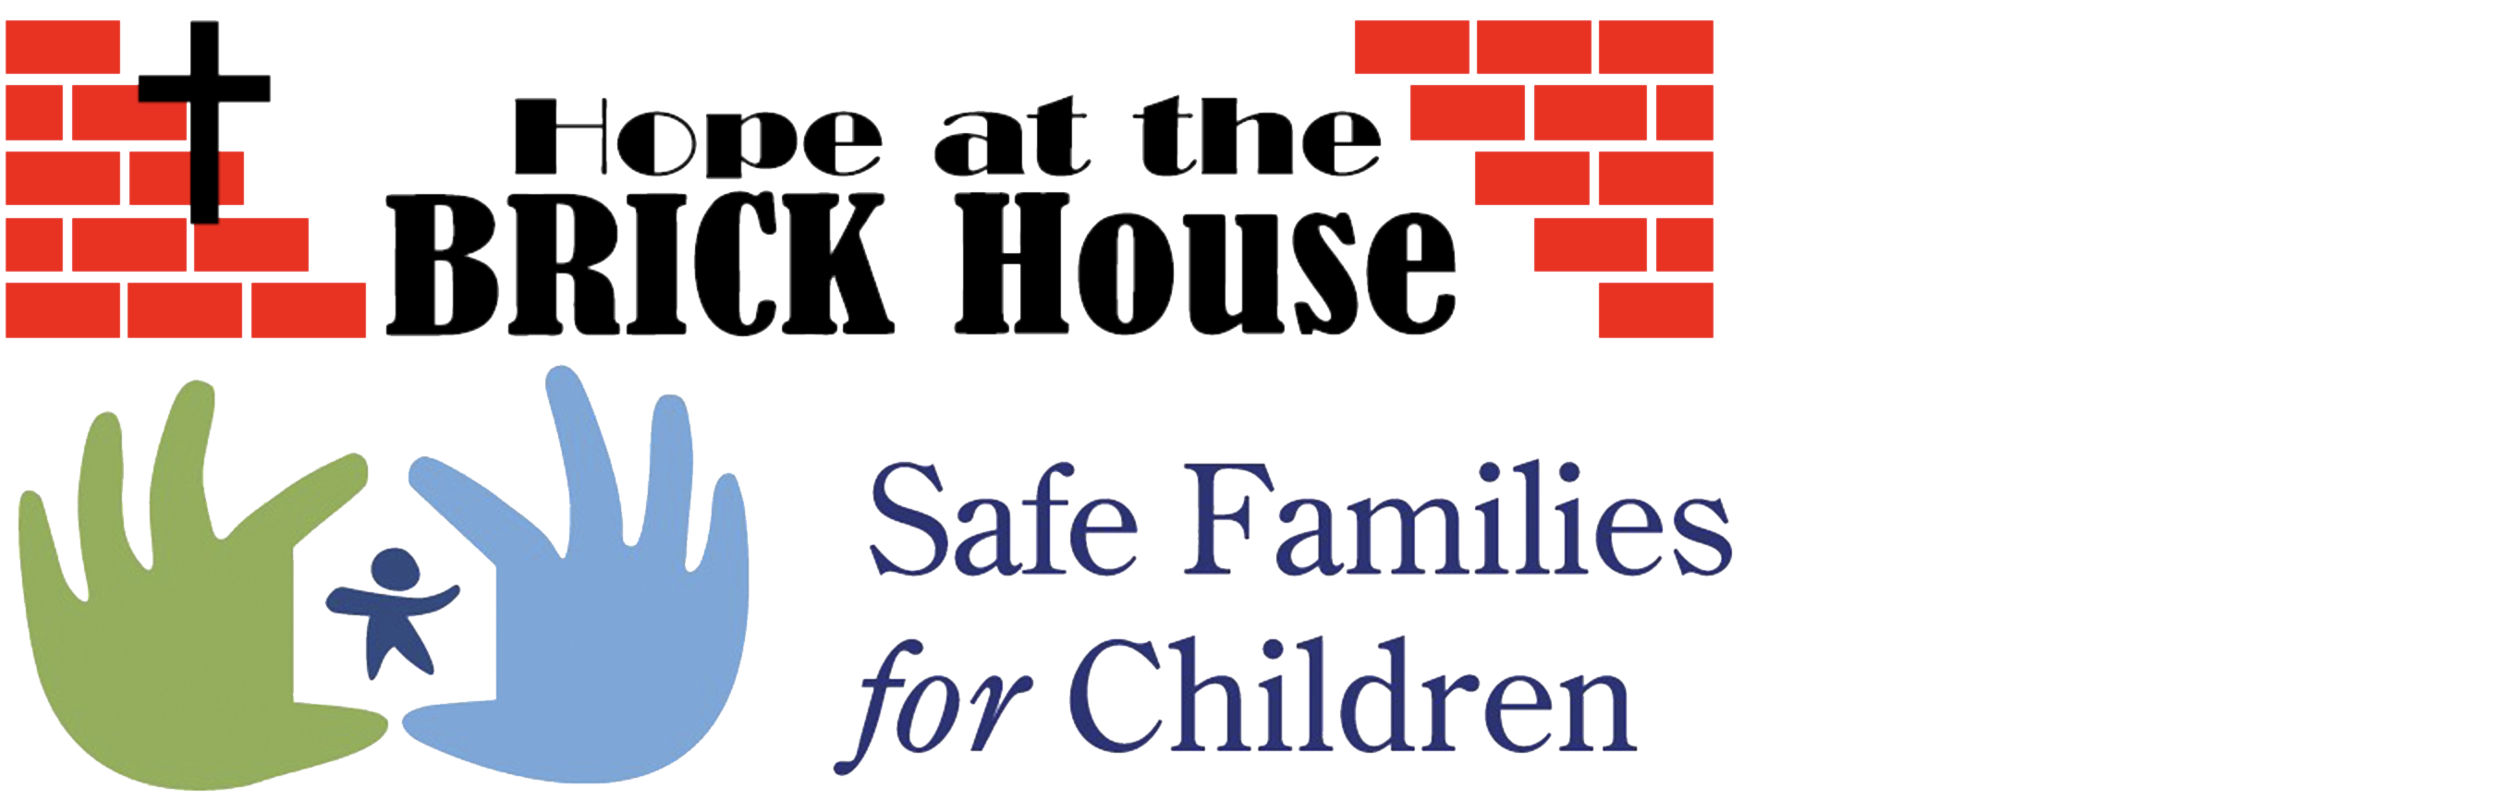 Hope at the Brick House & Safe Families - Hope at the Brick House is a neighborhood based program to help children succeed by providing tutoring and help from a Biblical perspective to all areas of life. Safe Families is a church based short term foster care to help parents and children during challenging times.